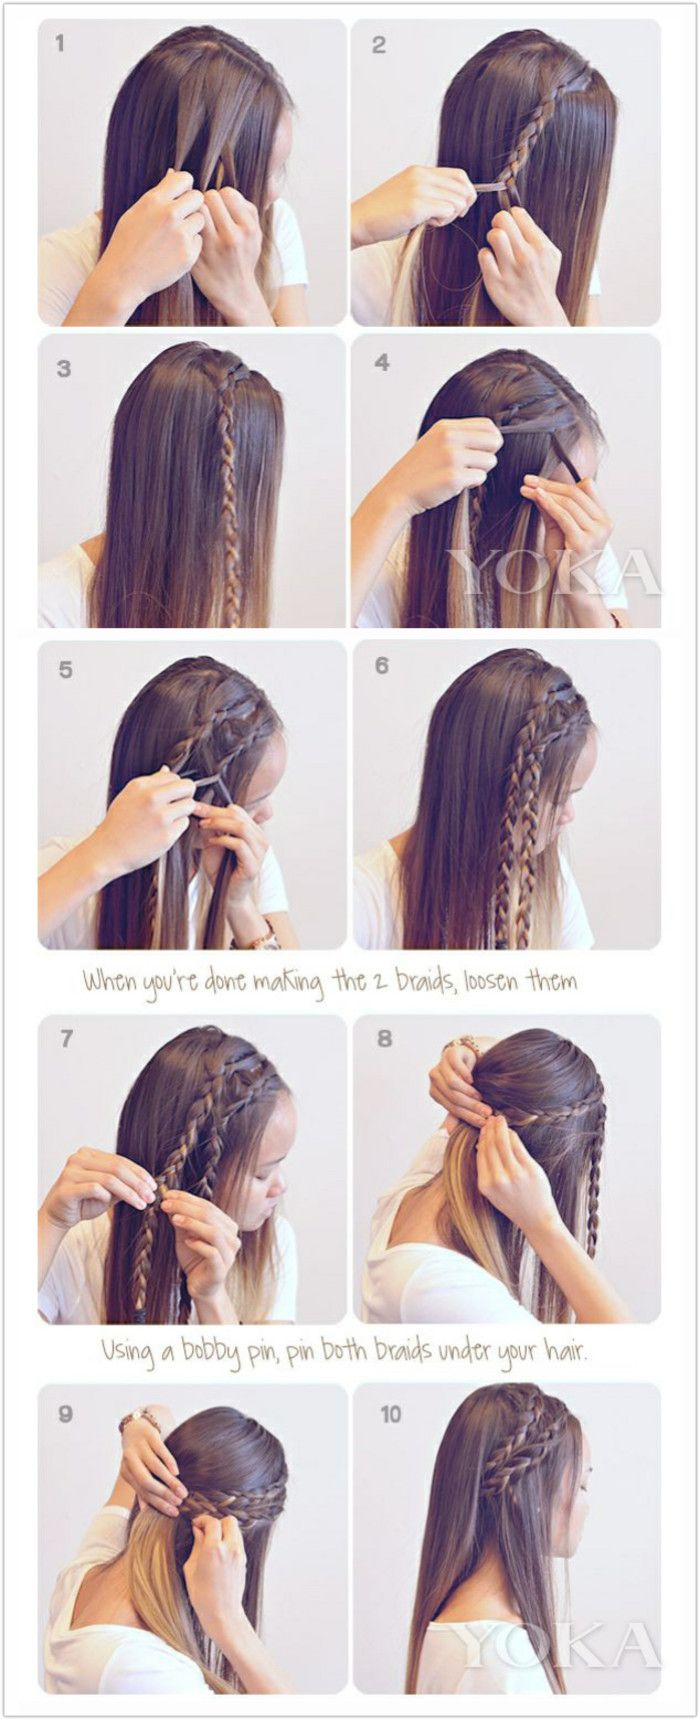 615 best Hair Pictorial images on Pinterest | Blog, Check and The step